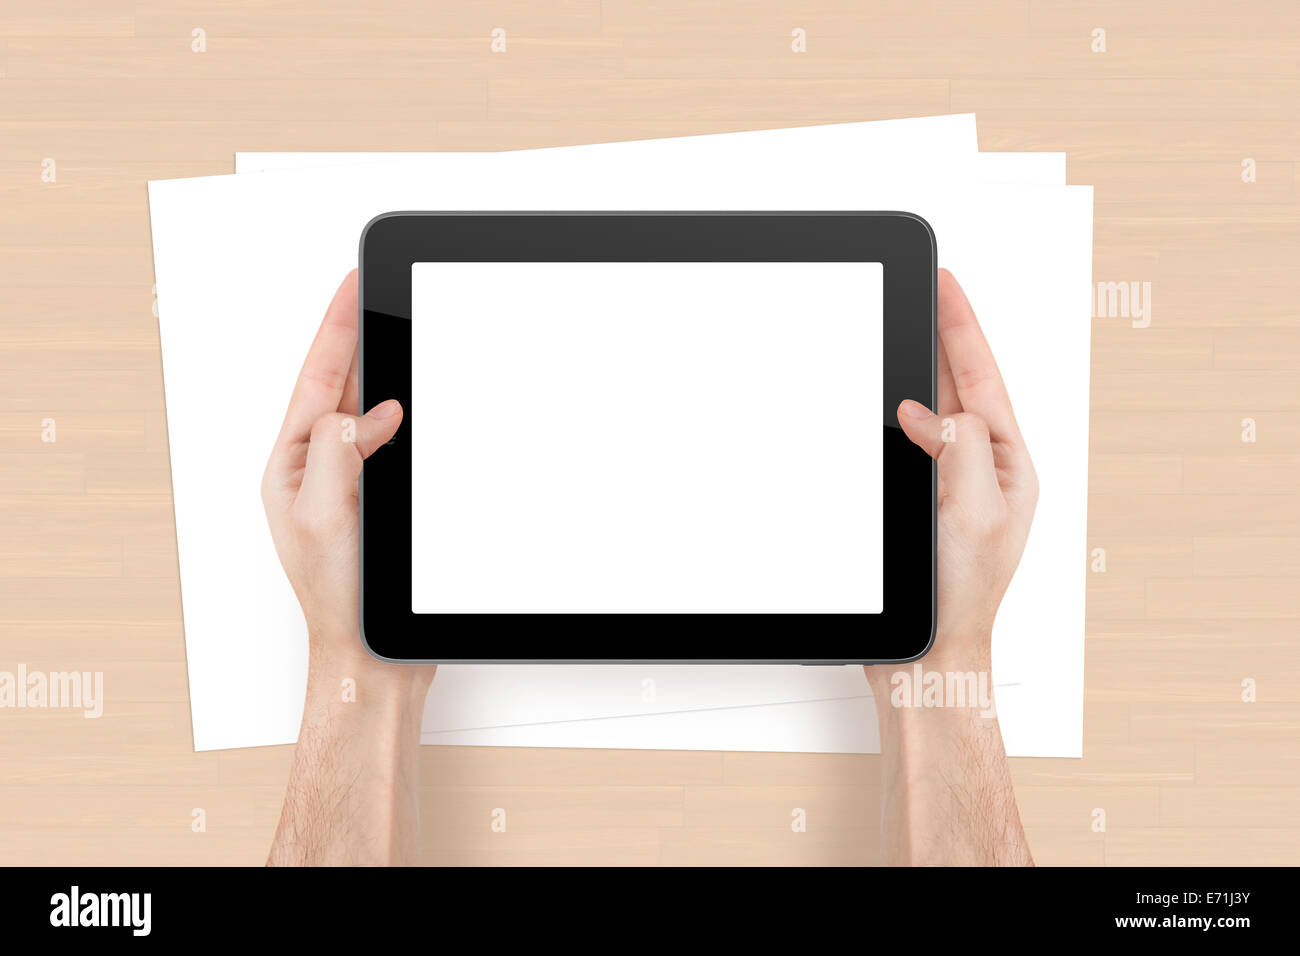 Hand holding tablet with blank, white screen and empty sheet on wooden office table. - Stock Image